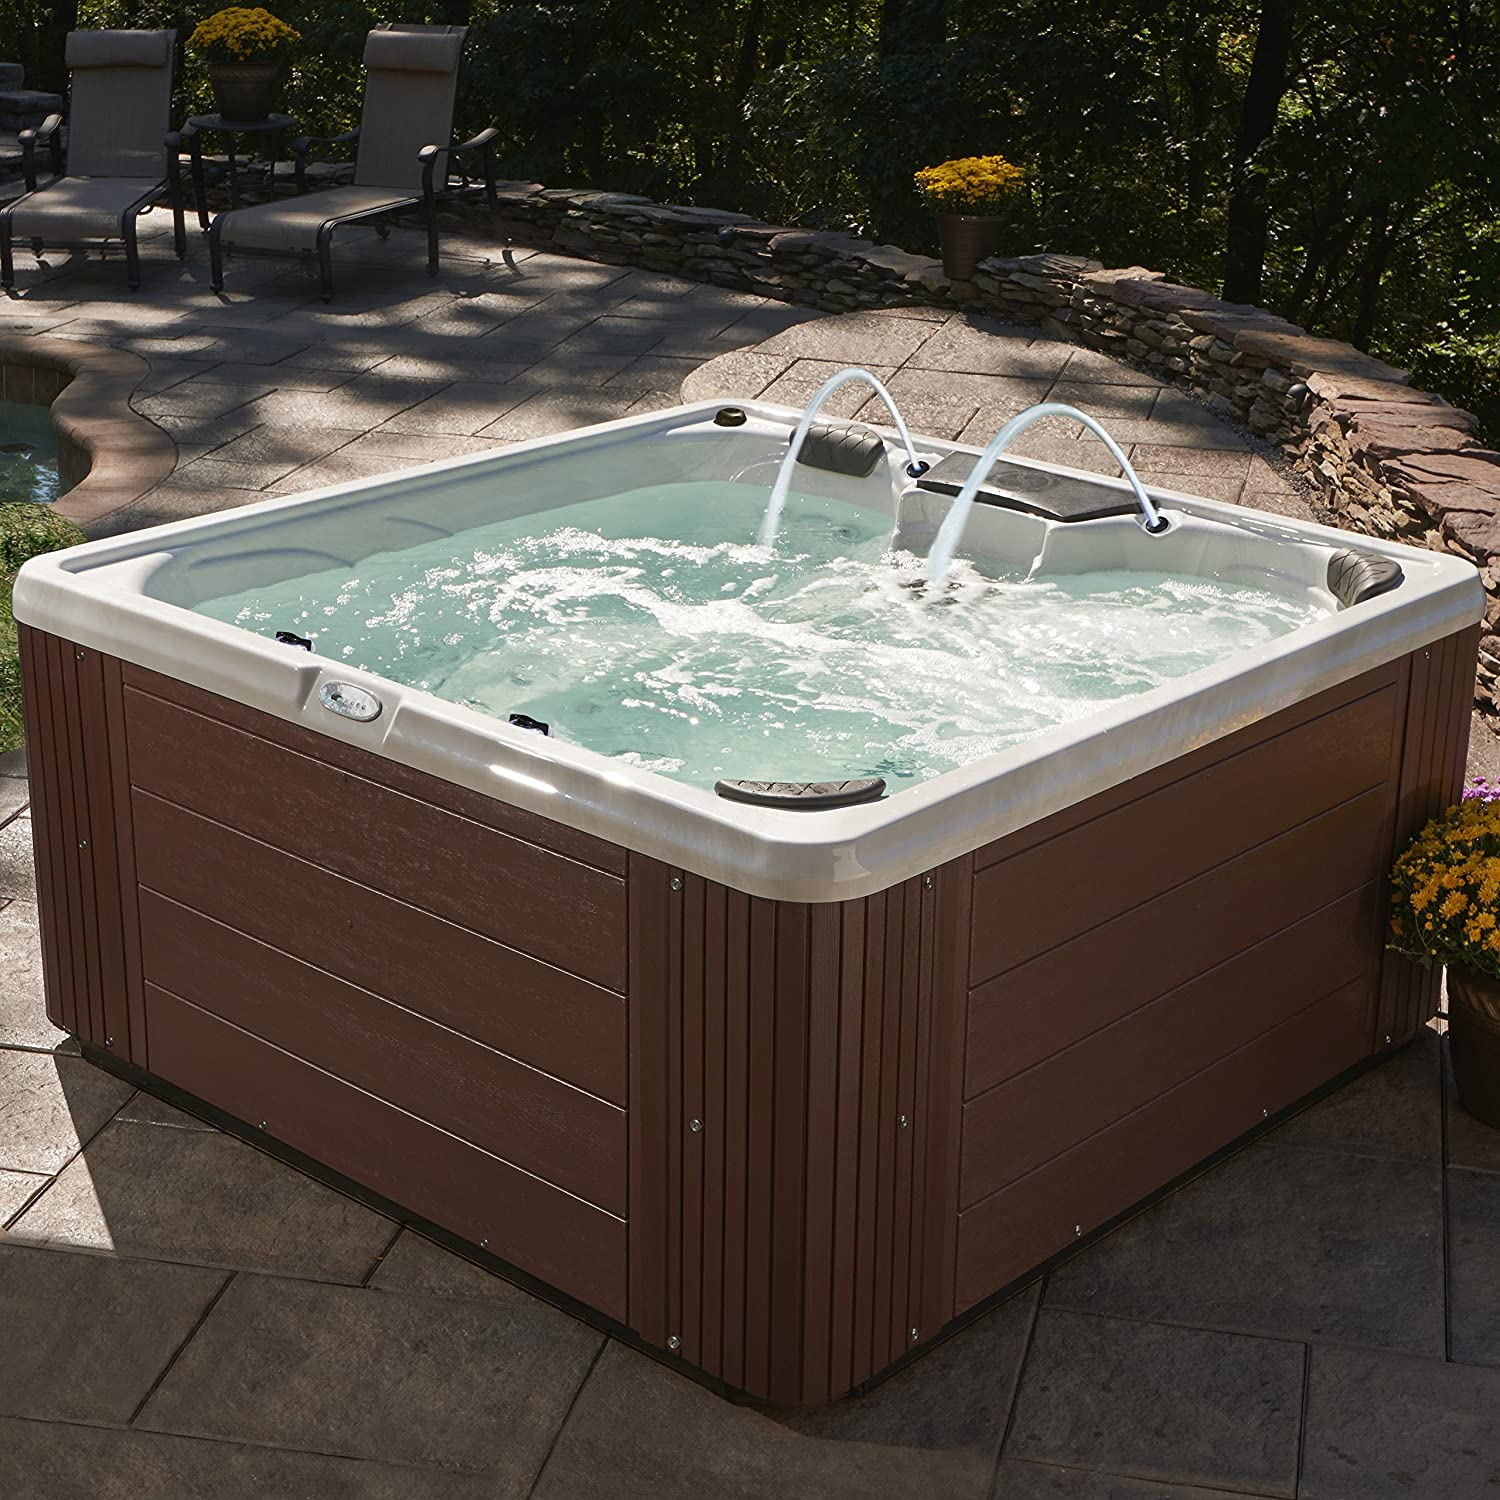 Adelaide from Essential Hot Tubs 5-6 Person Hot Tub